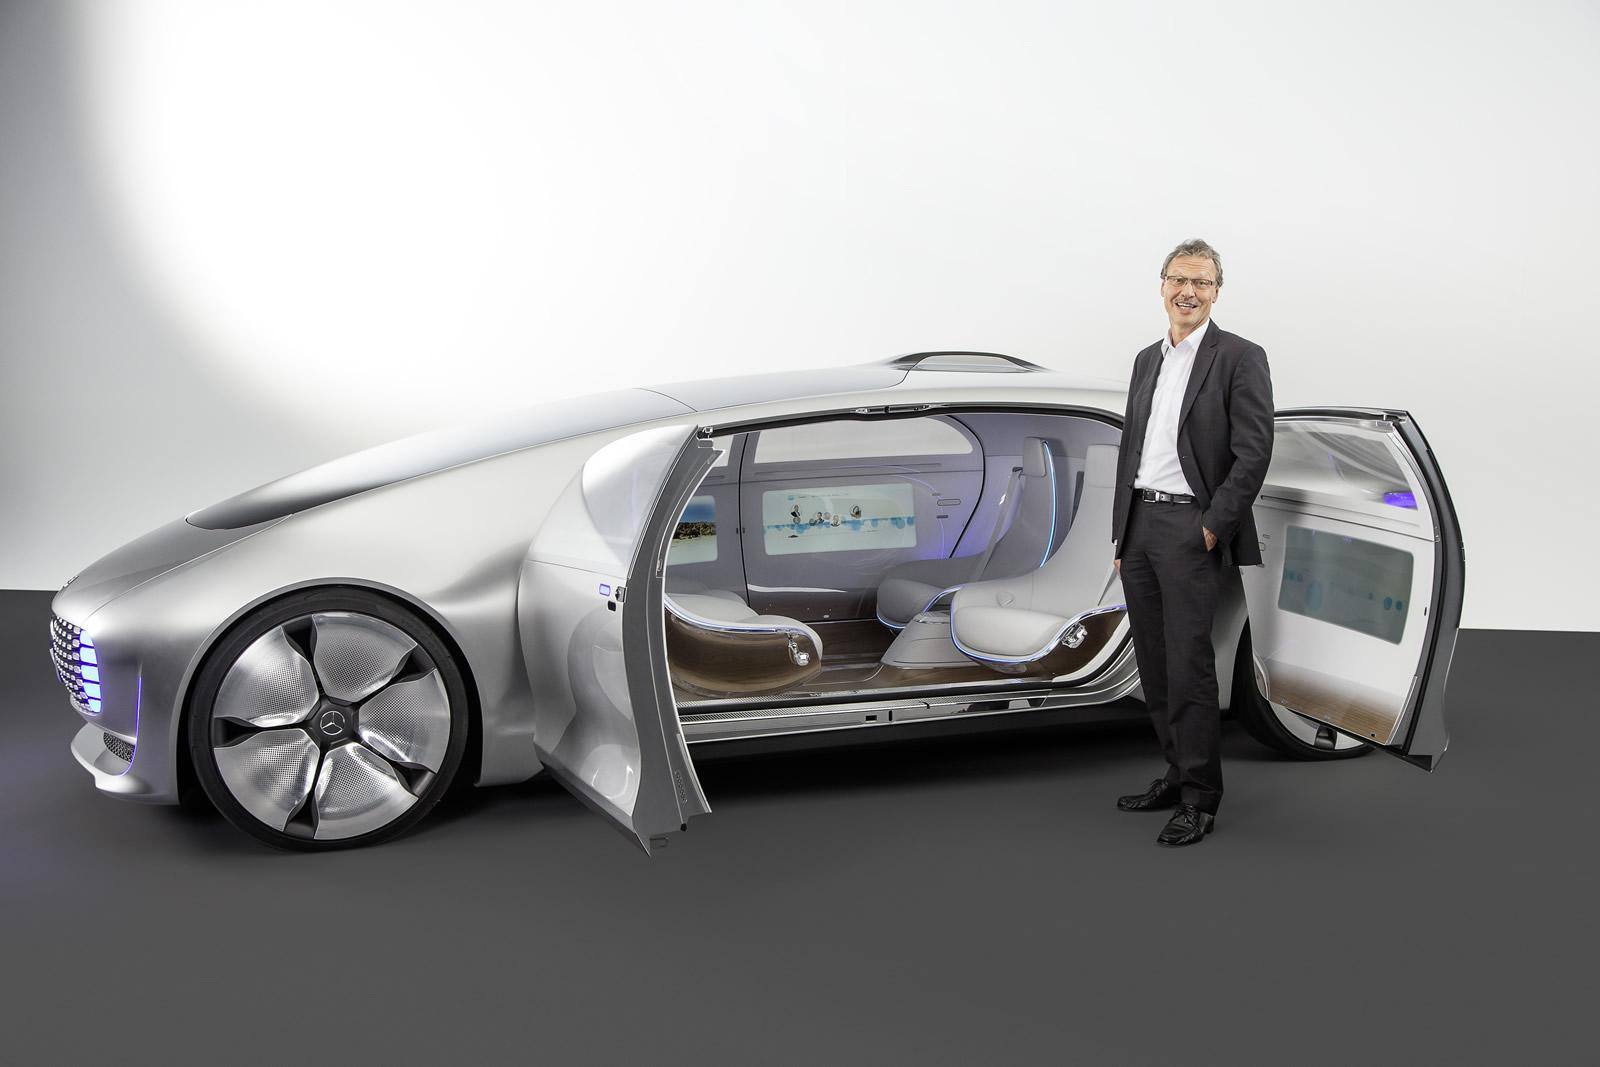 Auto Industry Innovations In 2015 Hybrids Self Driving